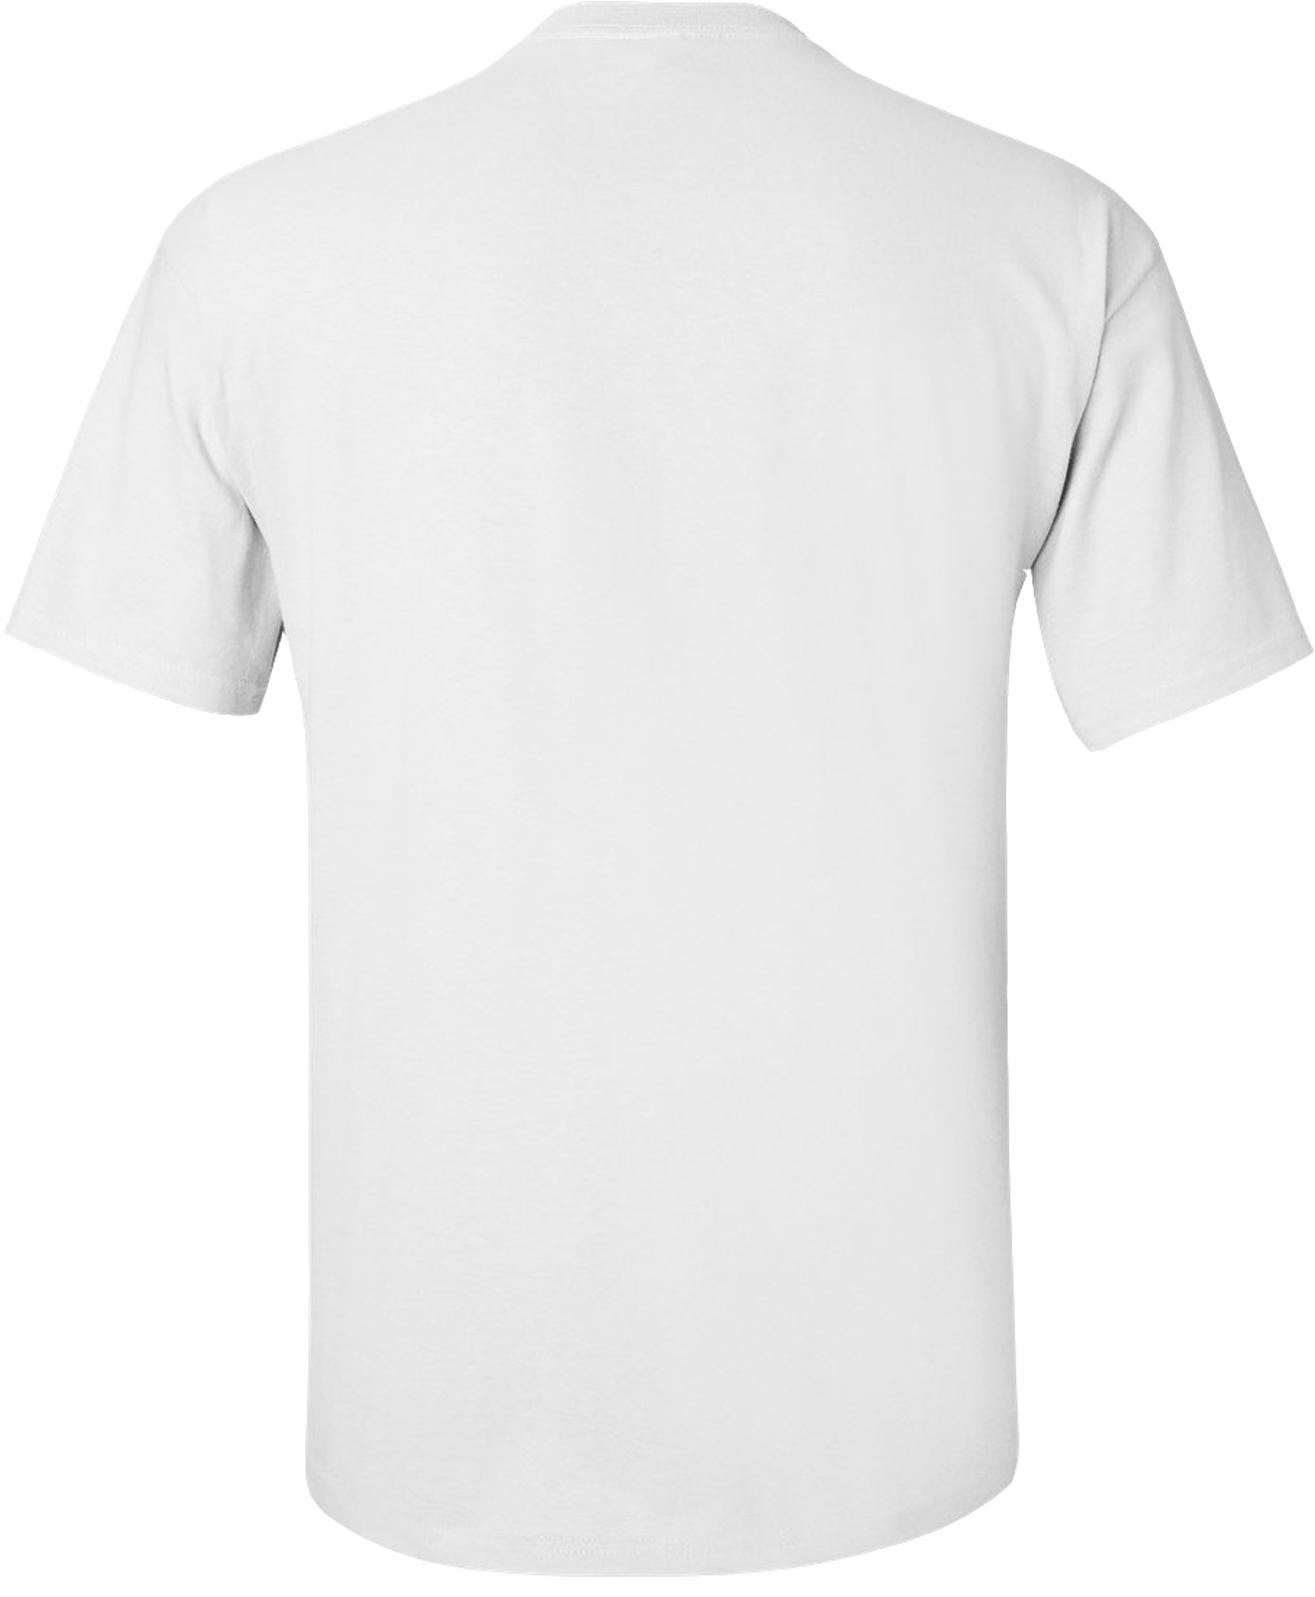 HD White T Shirt Template Png.